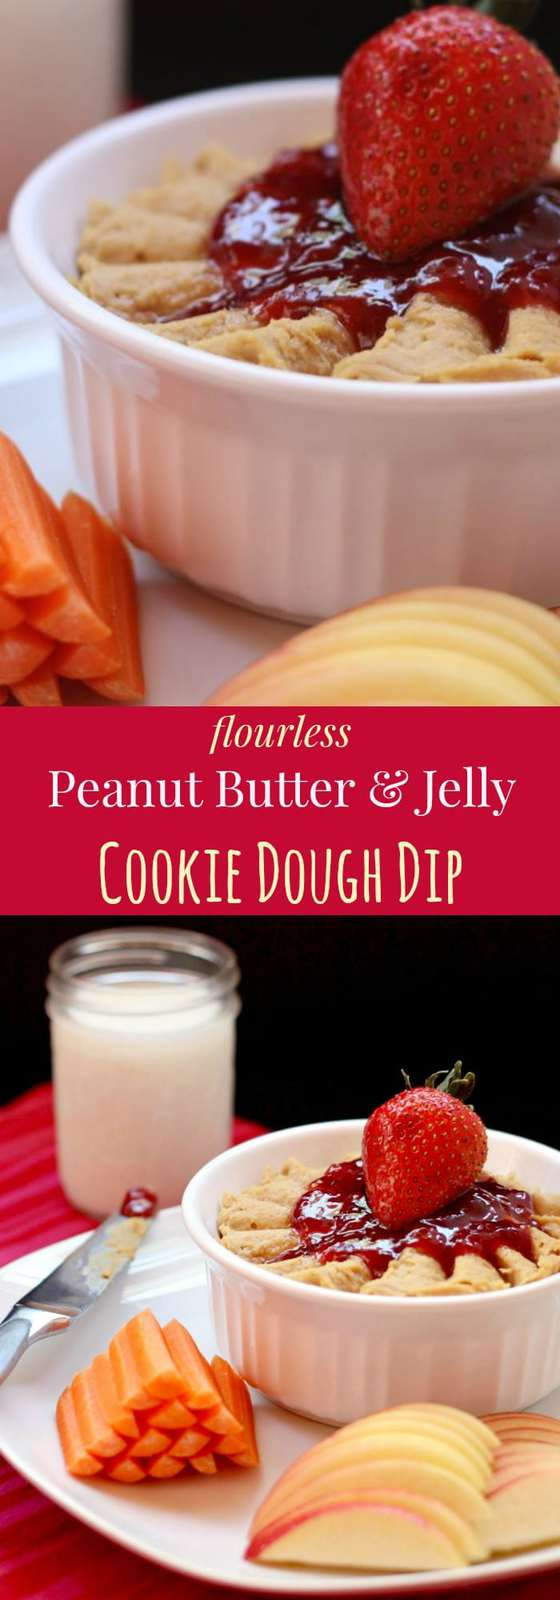 Flourless Peanut Butter and Jelly Cookie Dough Dip - made with a secret ingredient, this fun sweet dessert dip is a healthy snack recipe that's naturally gluten free and vegan.